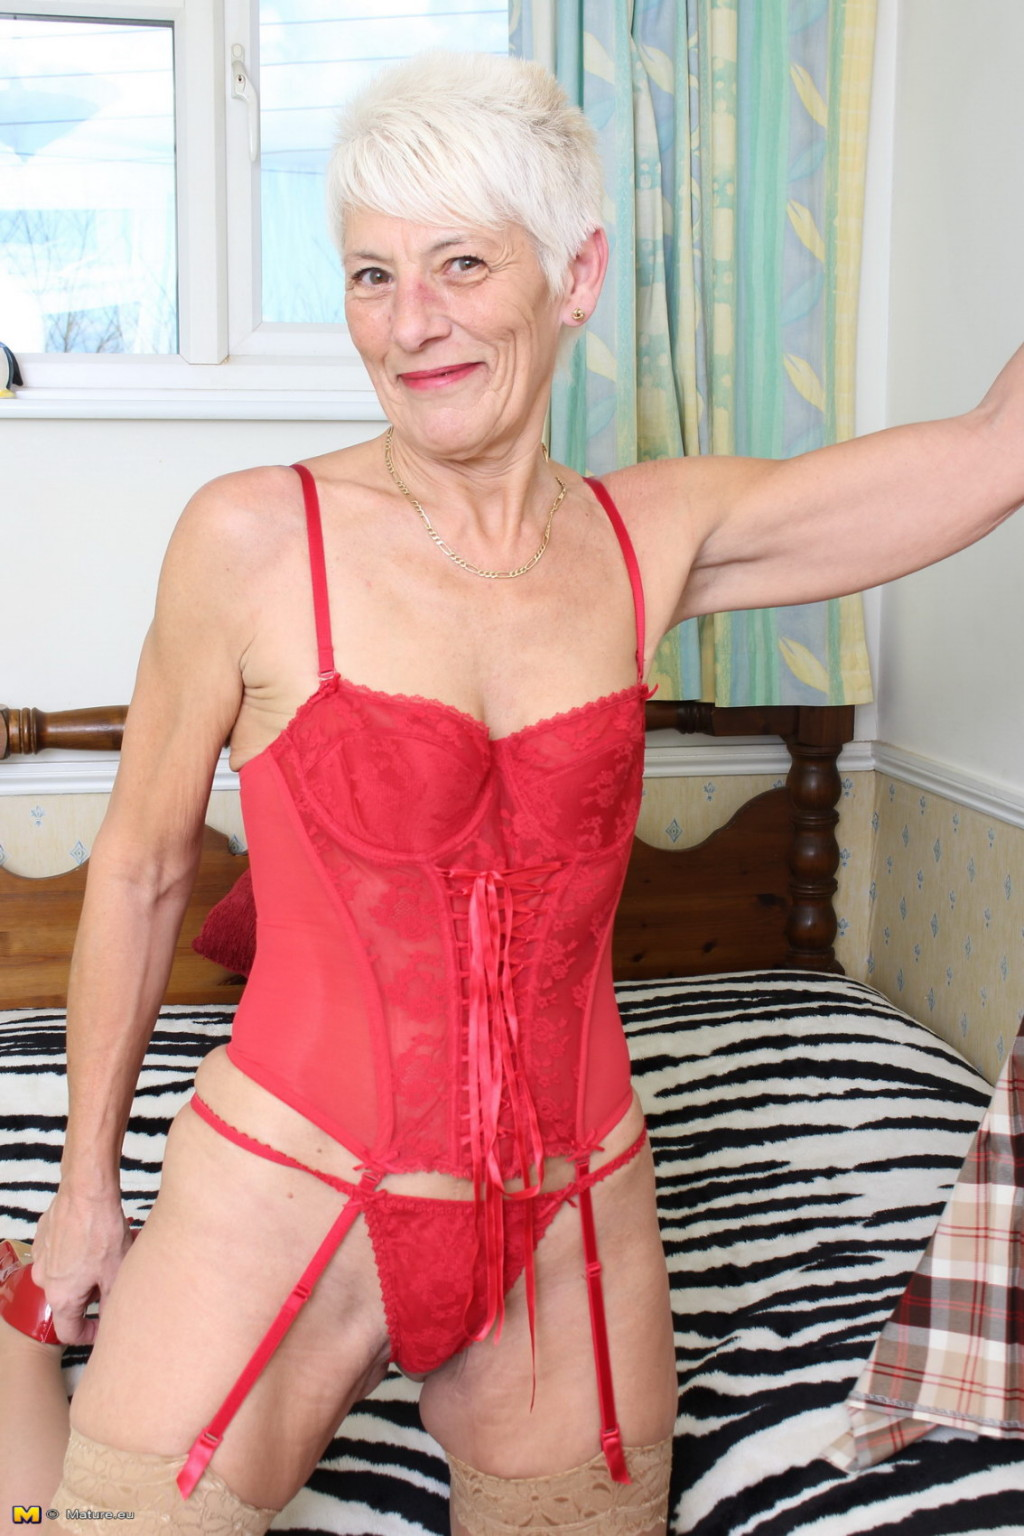 Your search mature, older. Older WomenZ - free porn videos.